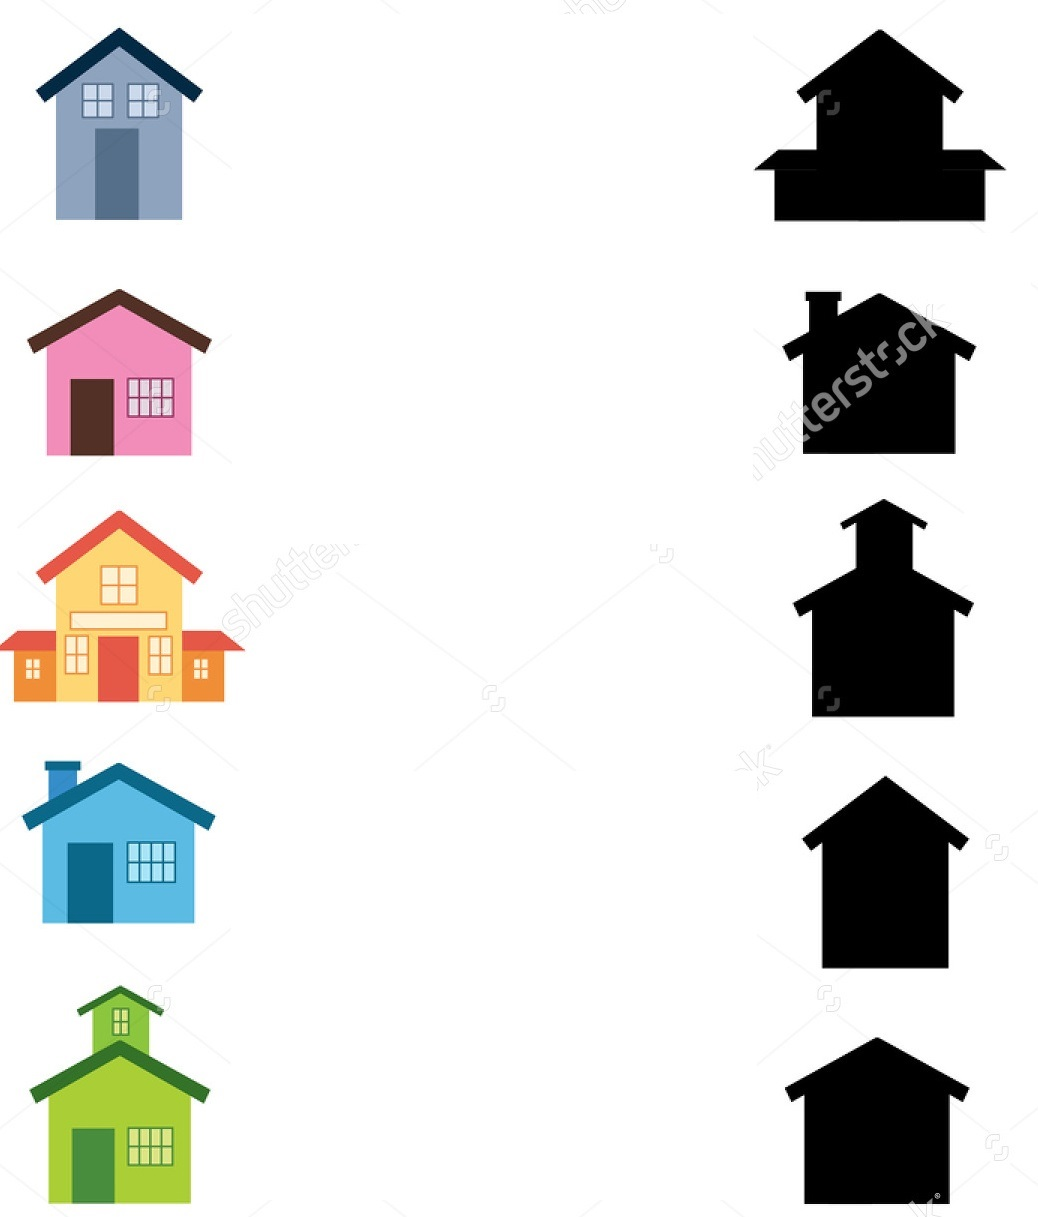 Stock Photo Worksheet Recognizing Shapes Draw A Line To